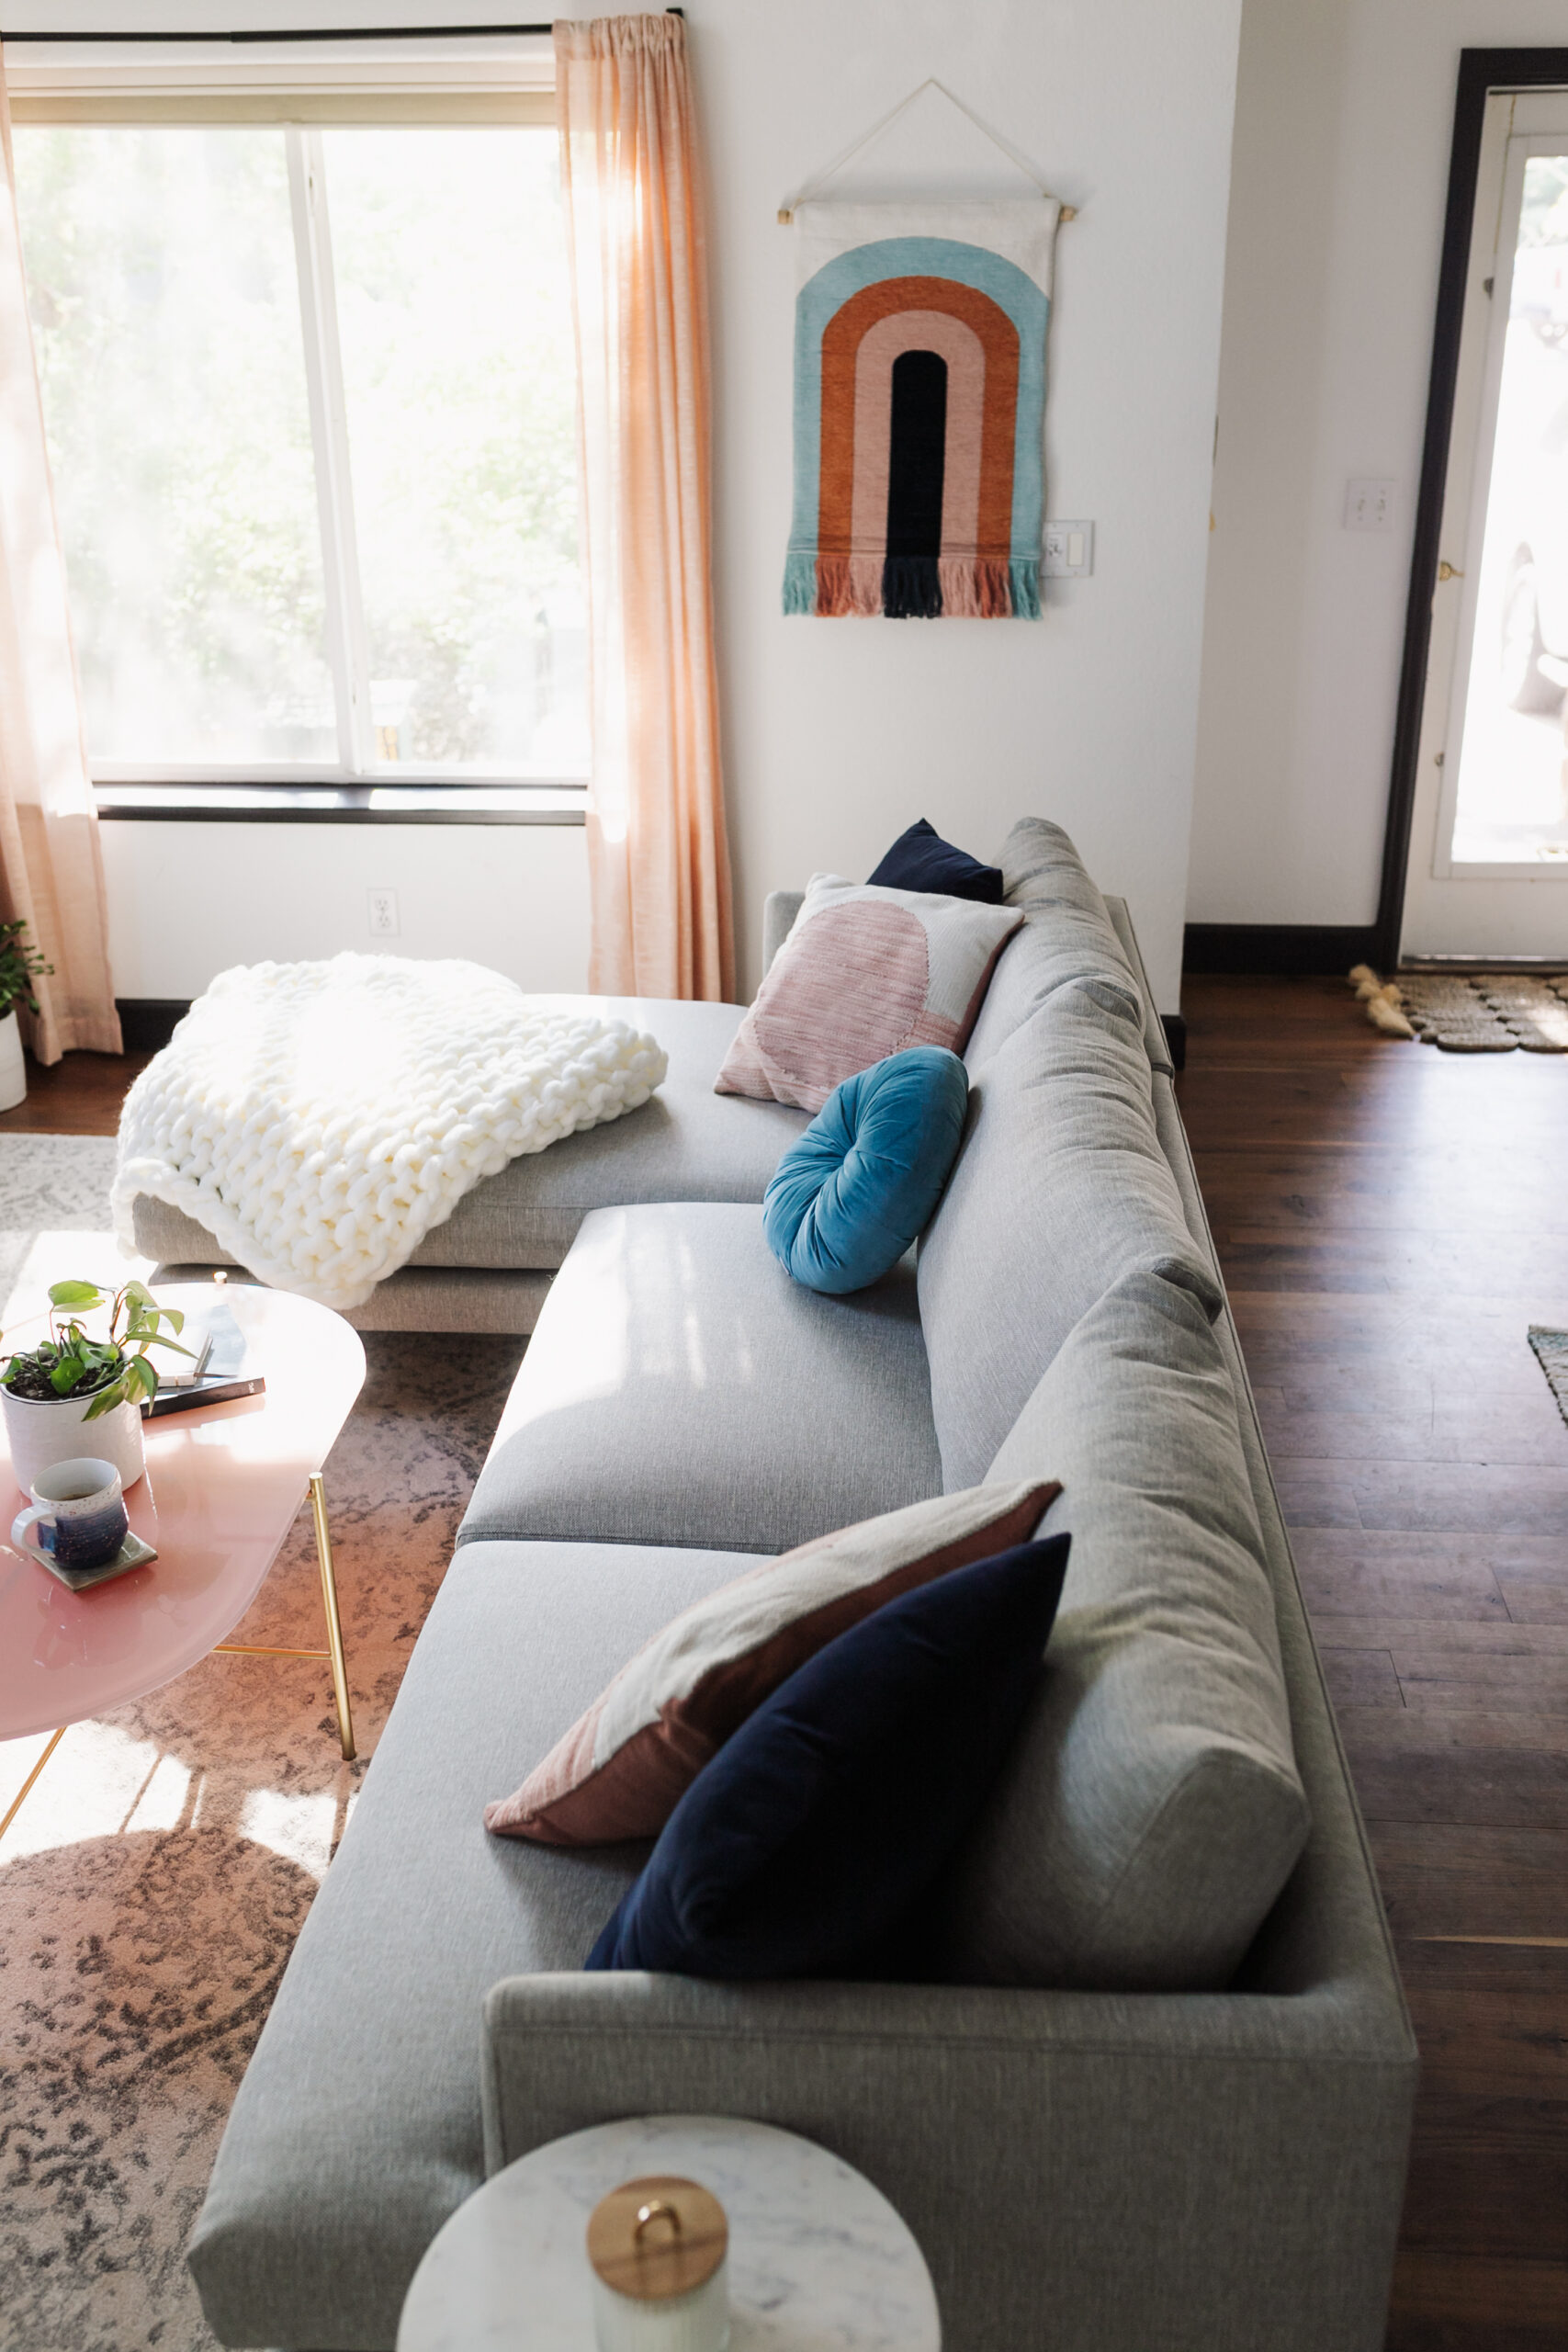 all the details from the cozy modern mountain living room are on the blog #thelovedesignedlife #theldlhome #modernmountainlivingroom #mountainliving #homedesigne #interiordesign #ourarticle